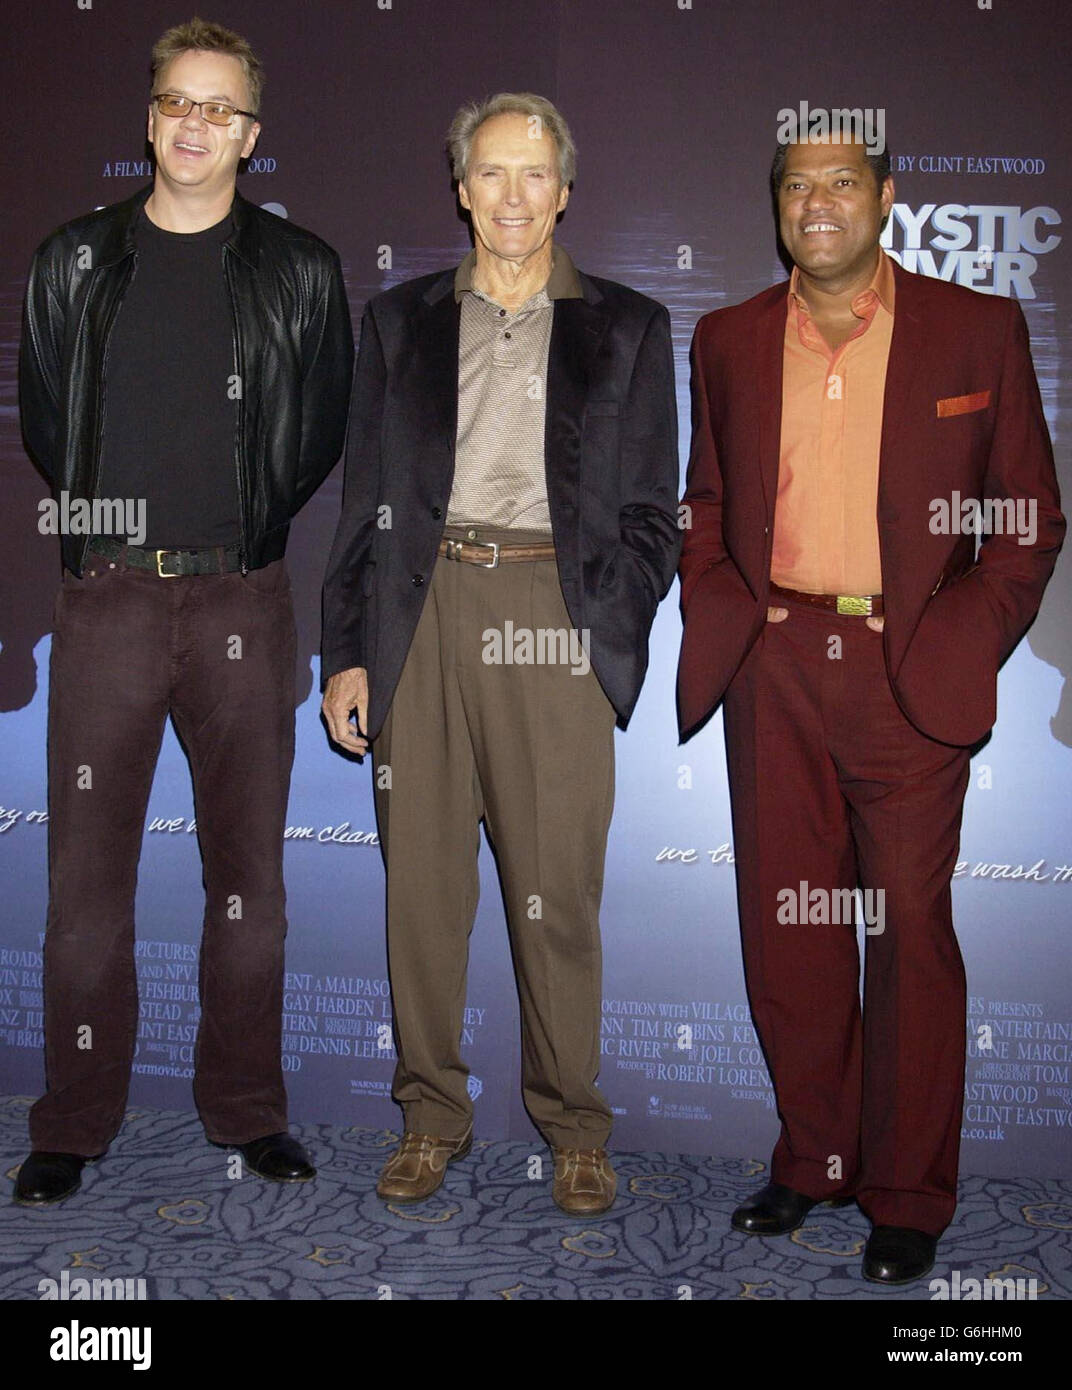 Robbins, Fishburne and Eastwood Mystic River Premiere Stock Photo - Alamy